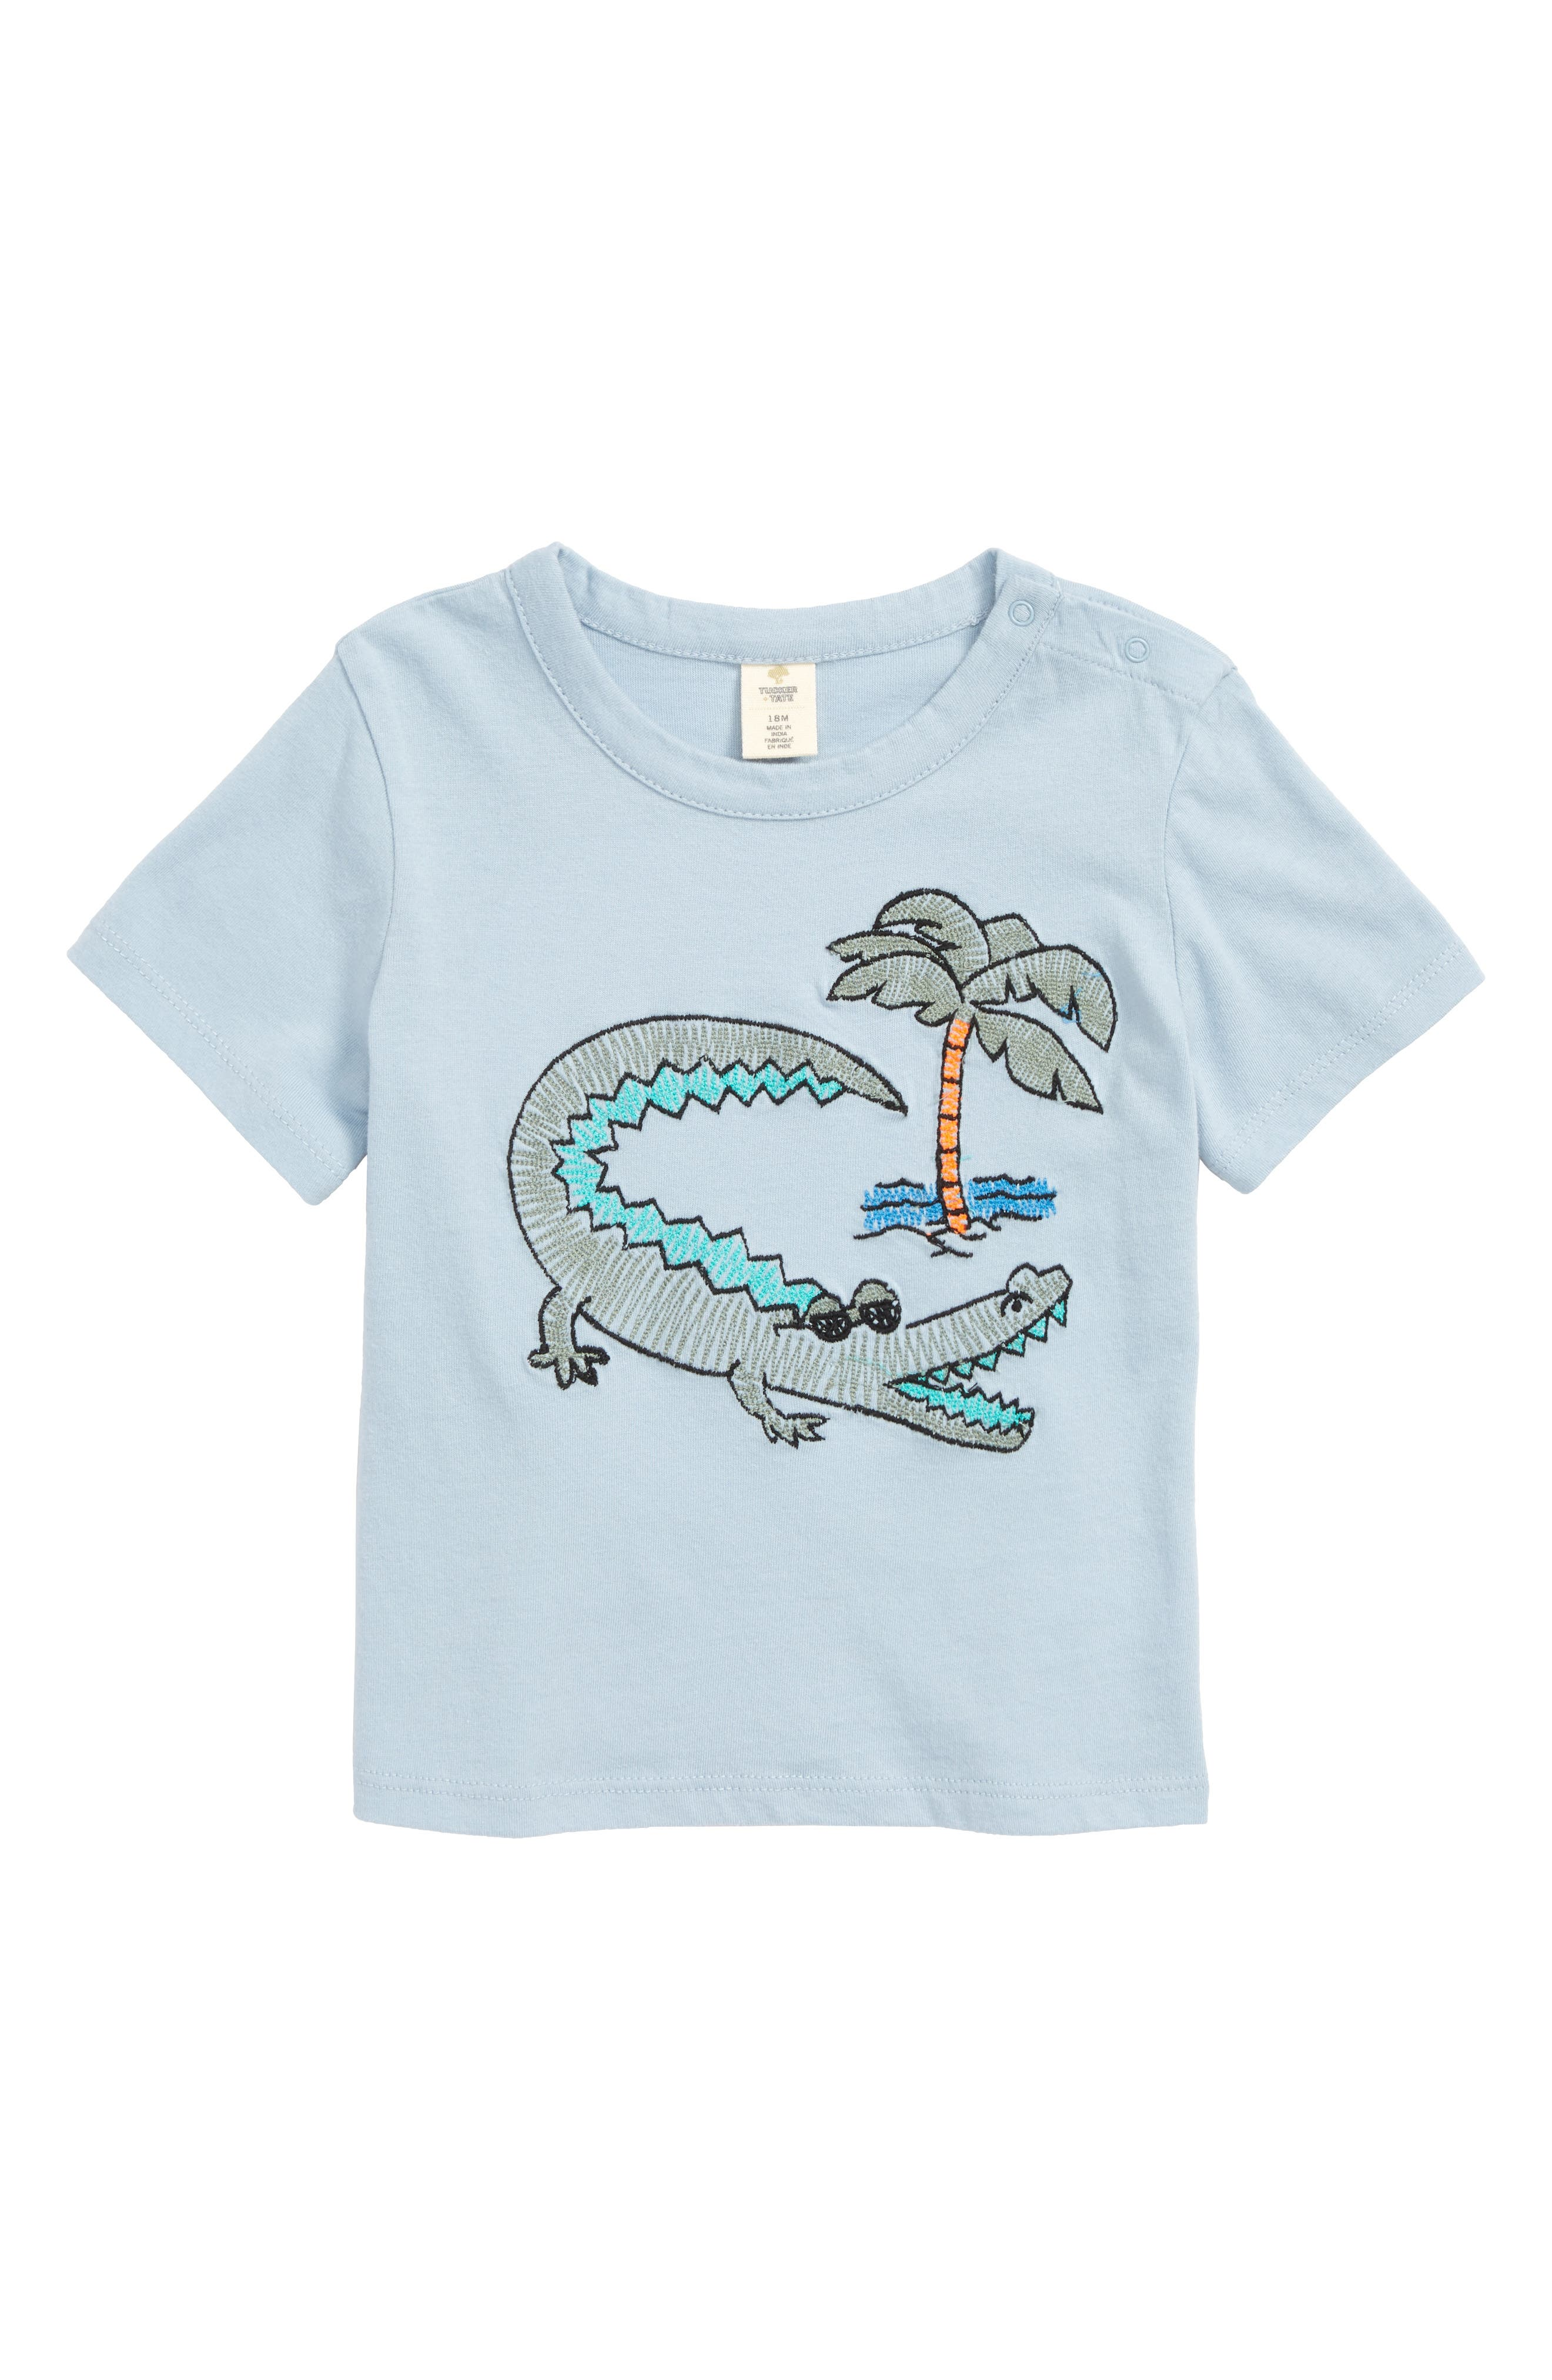 Embroidered T-Shirt,                         Main,                         color, 420